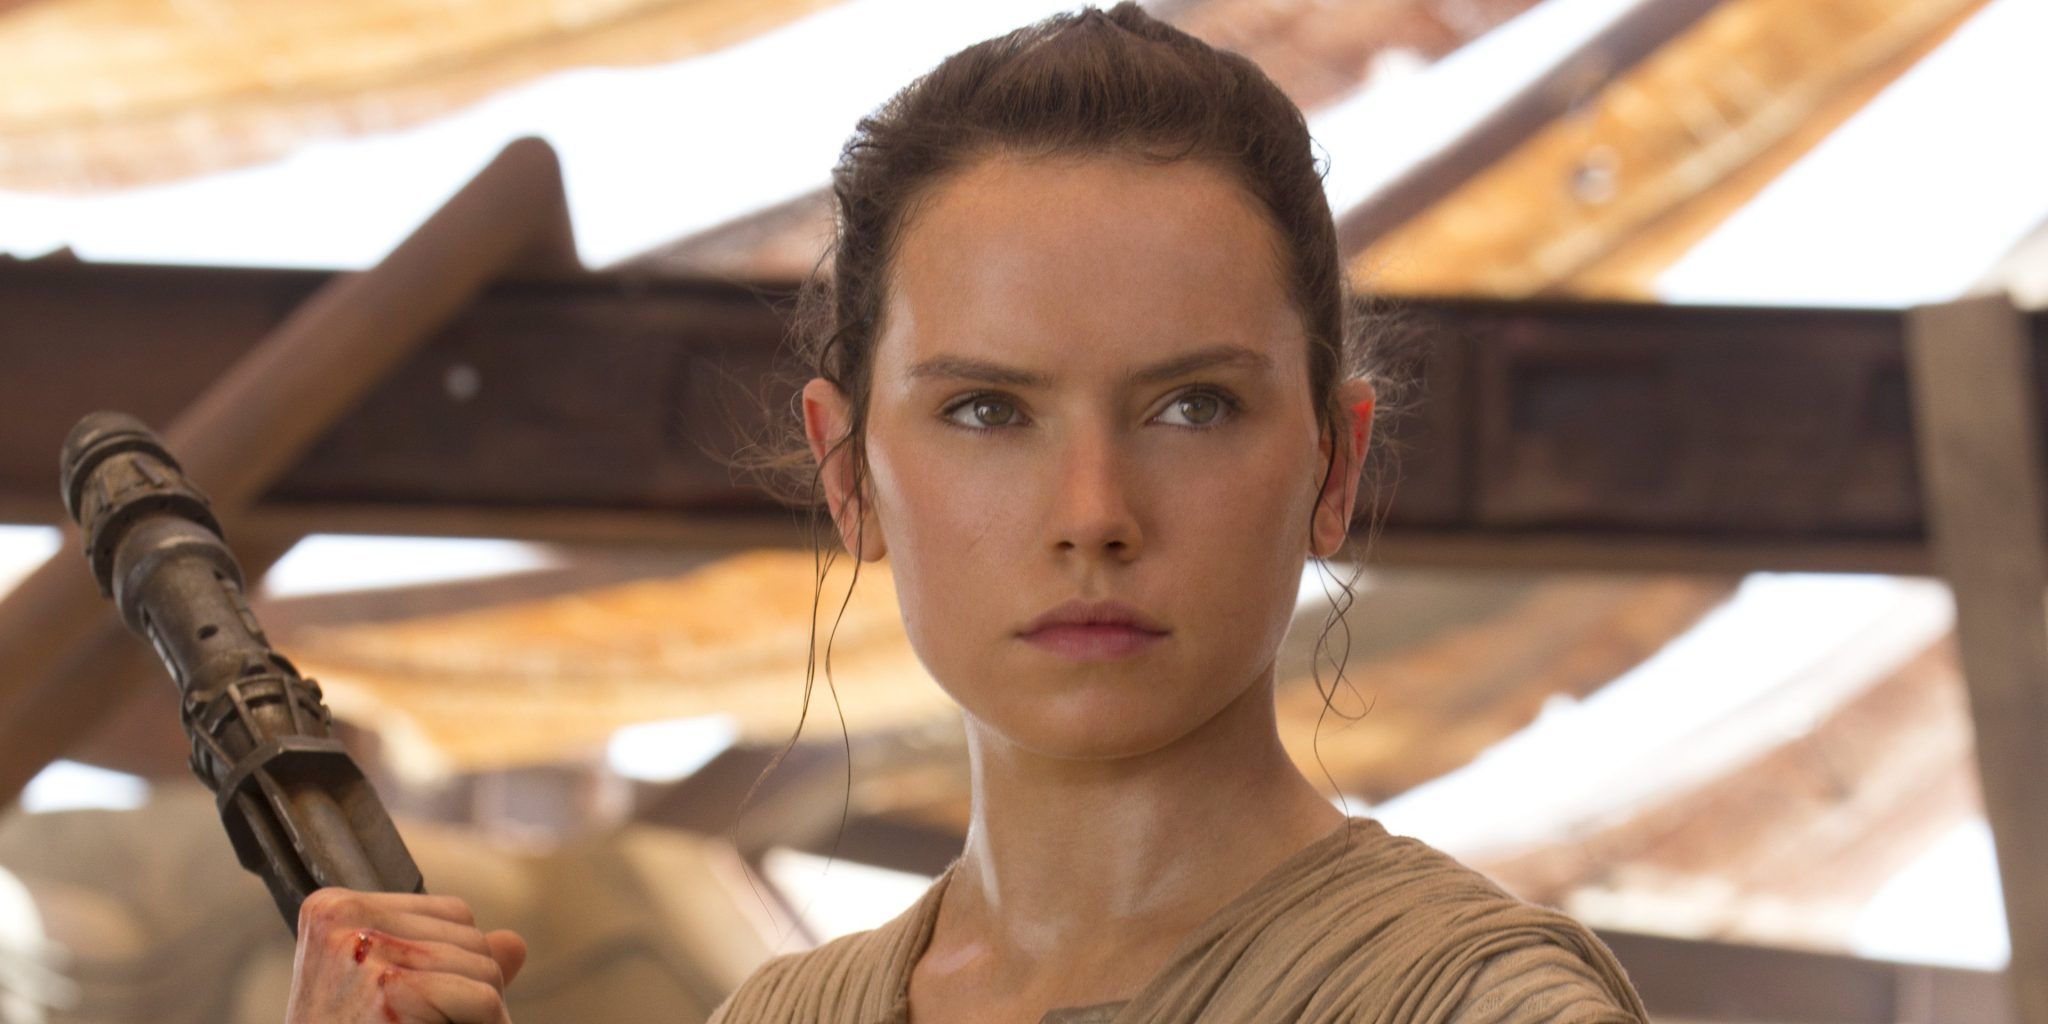 Star Wars- Force for Change - Happy Star Wars Day from Daisy Ridley